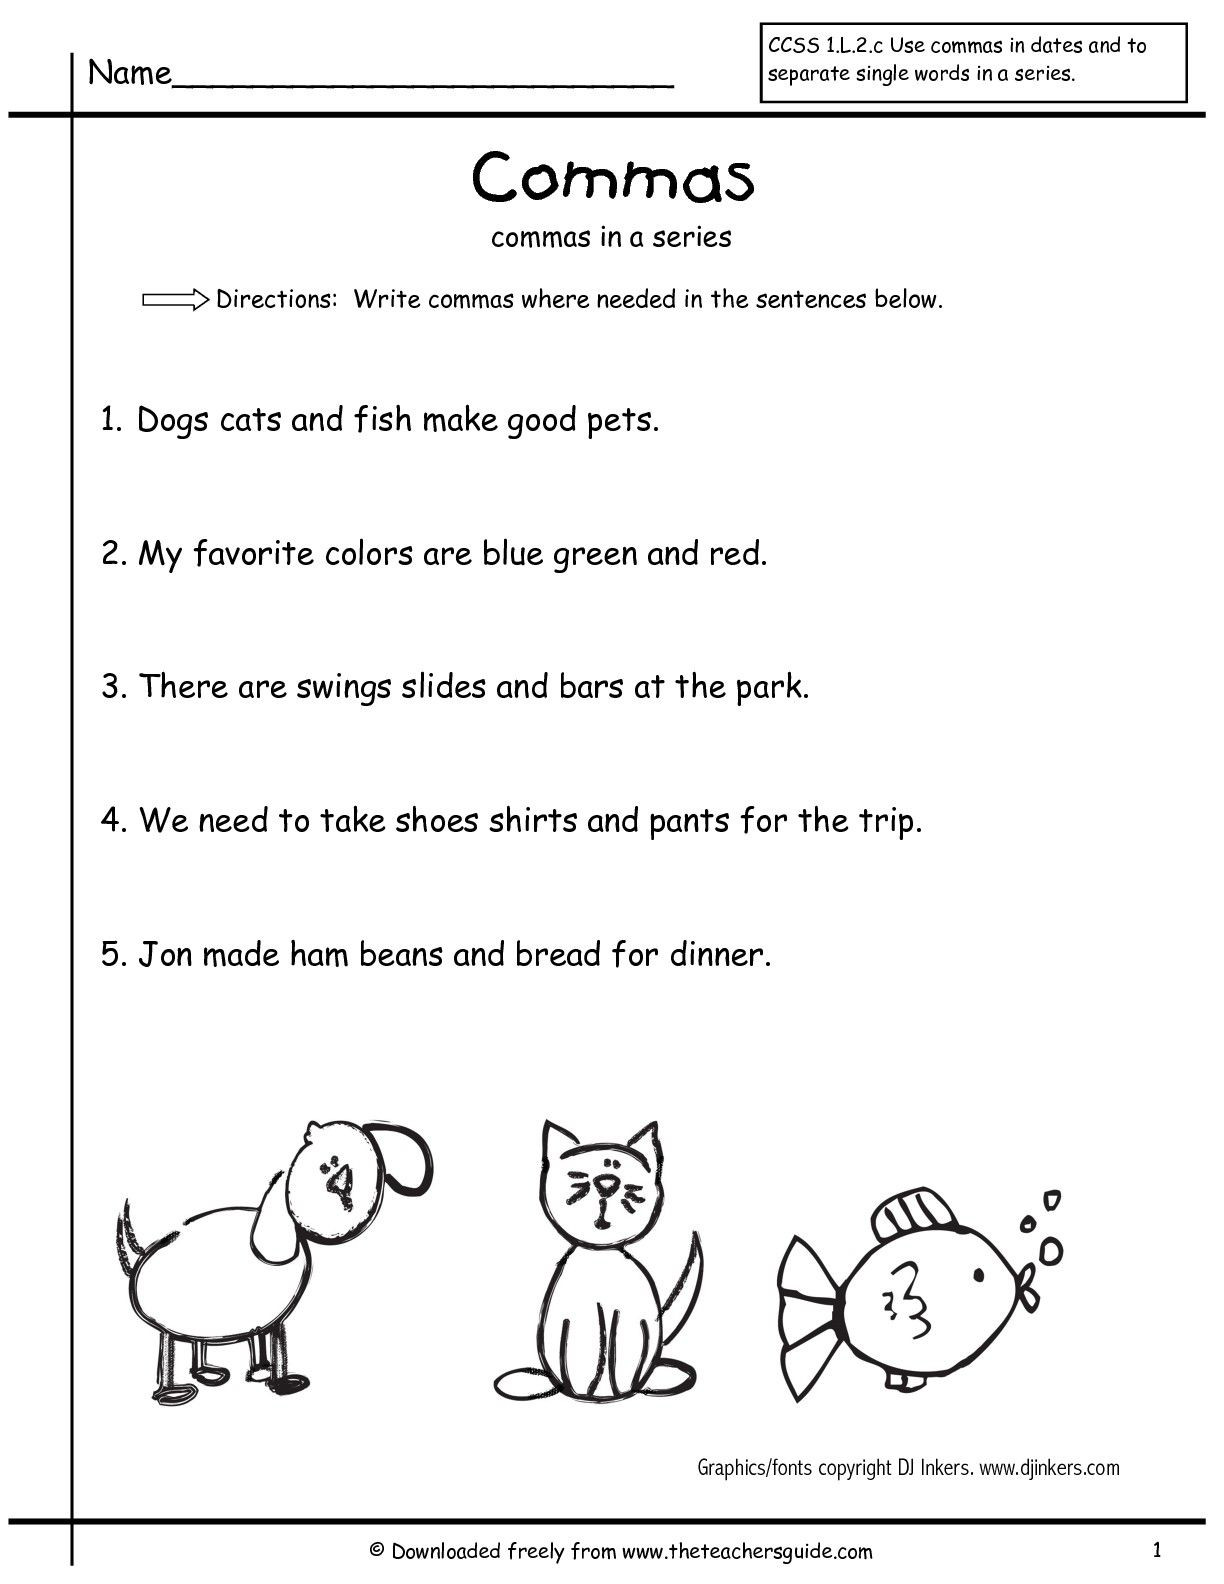 Comma Worksheet Middle School Pdf Grammar Worksheets Mas In A Series First Grade Free